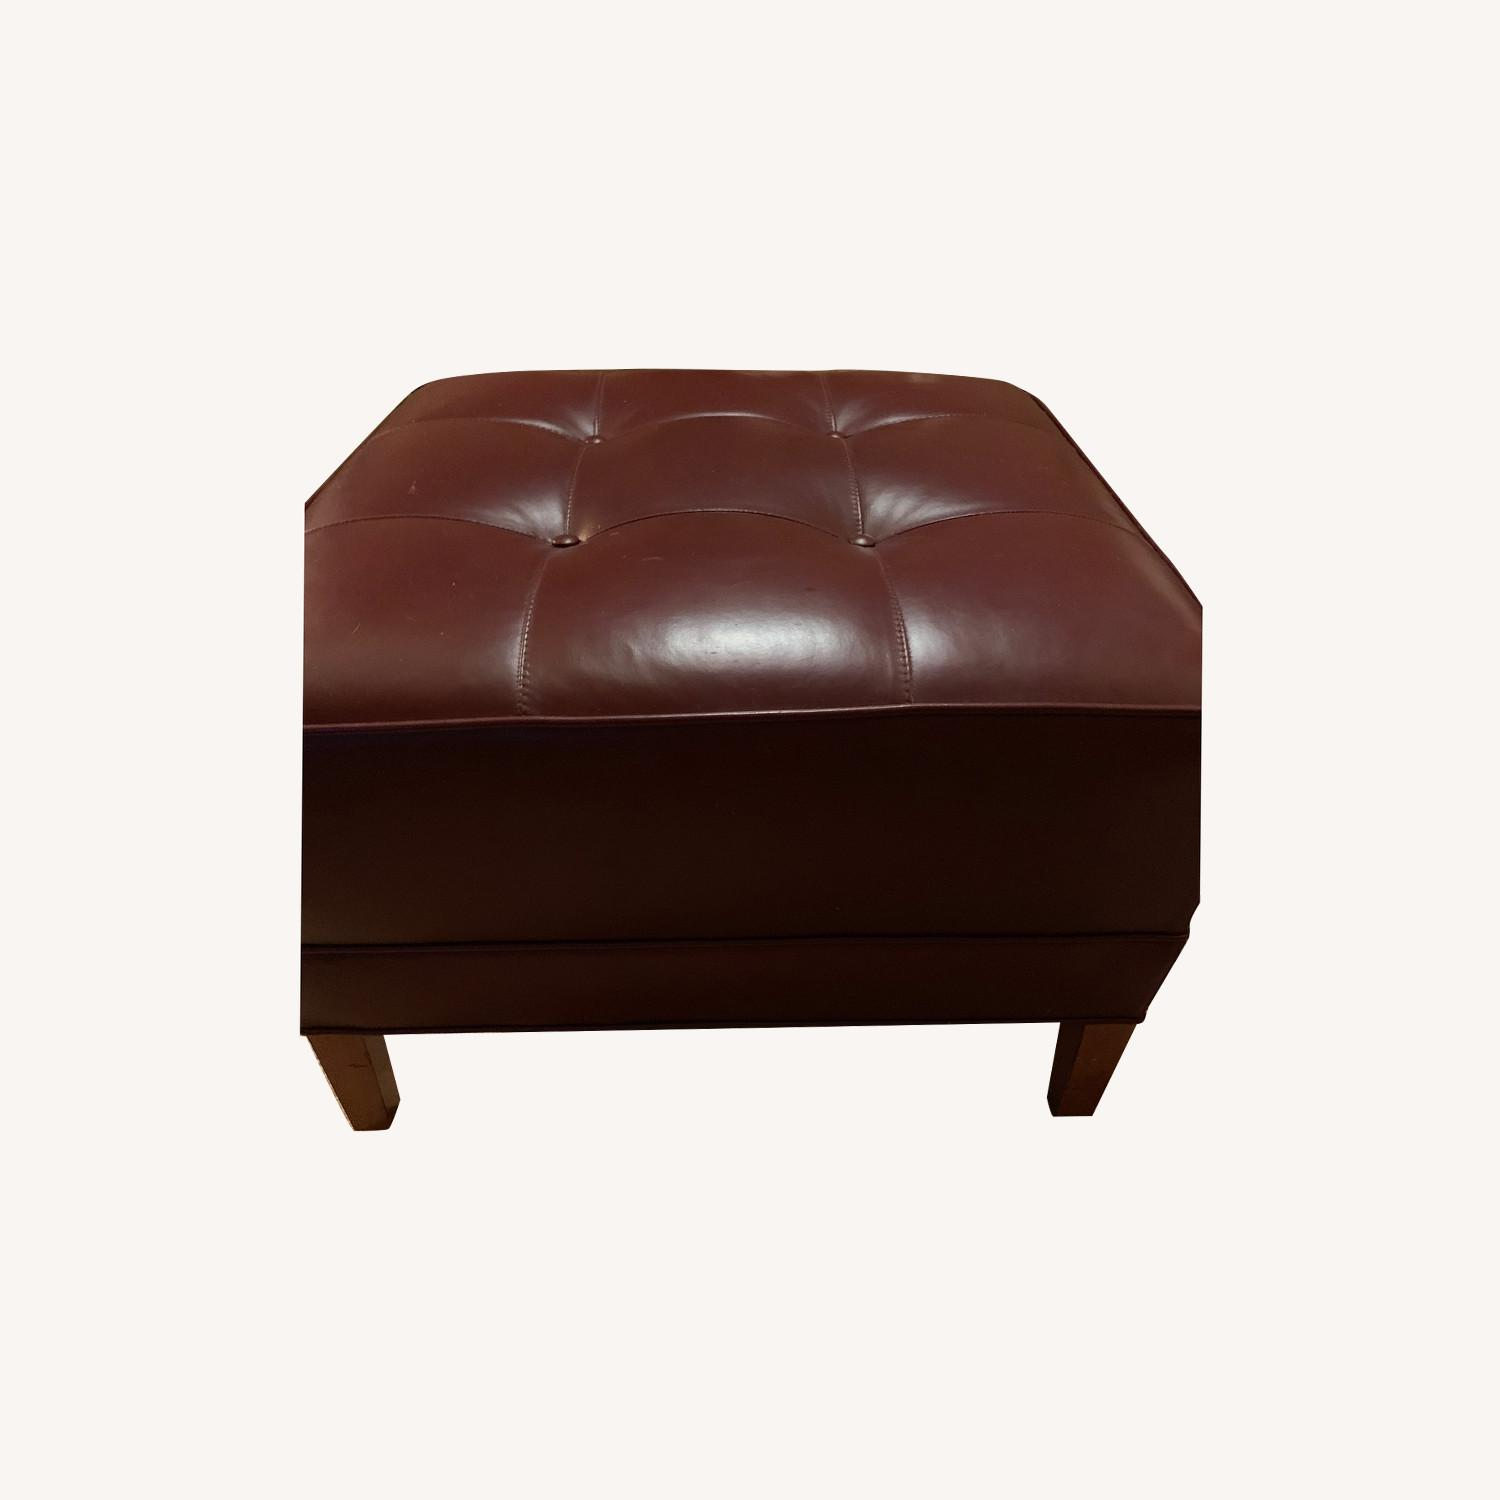 Ethan Allen Burgundy Tufted Leather Ottoman - image-0